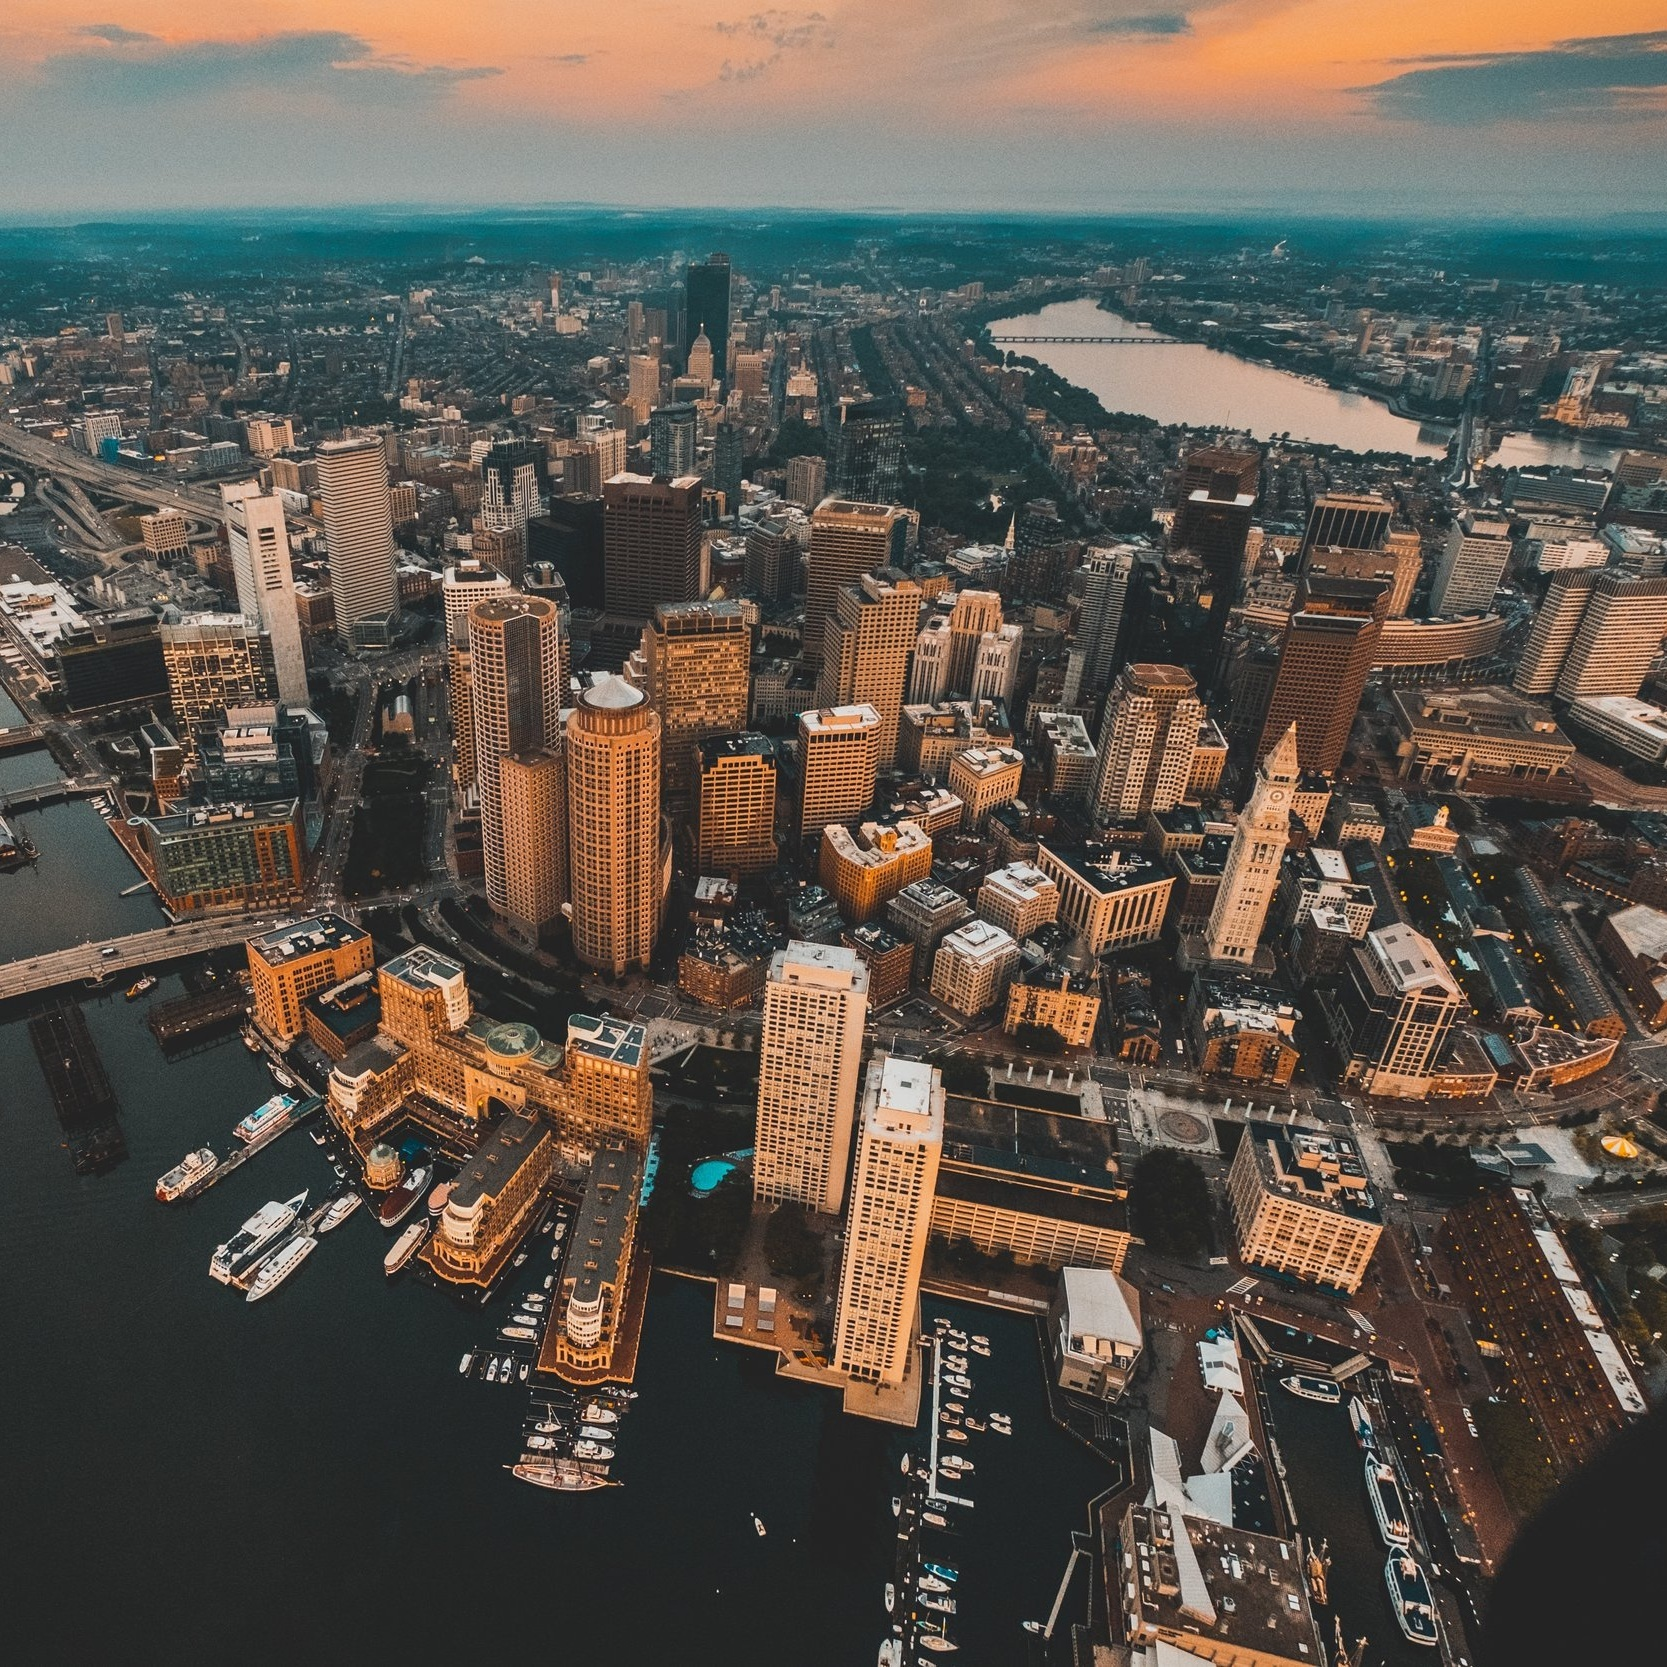 Boston: The Birthplace of Innovation